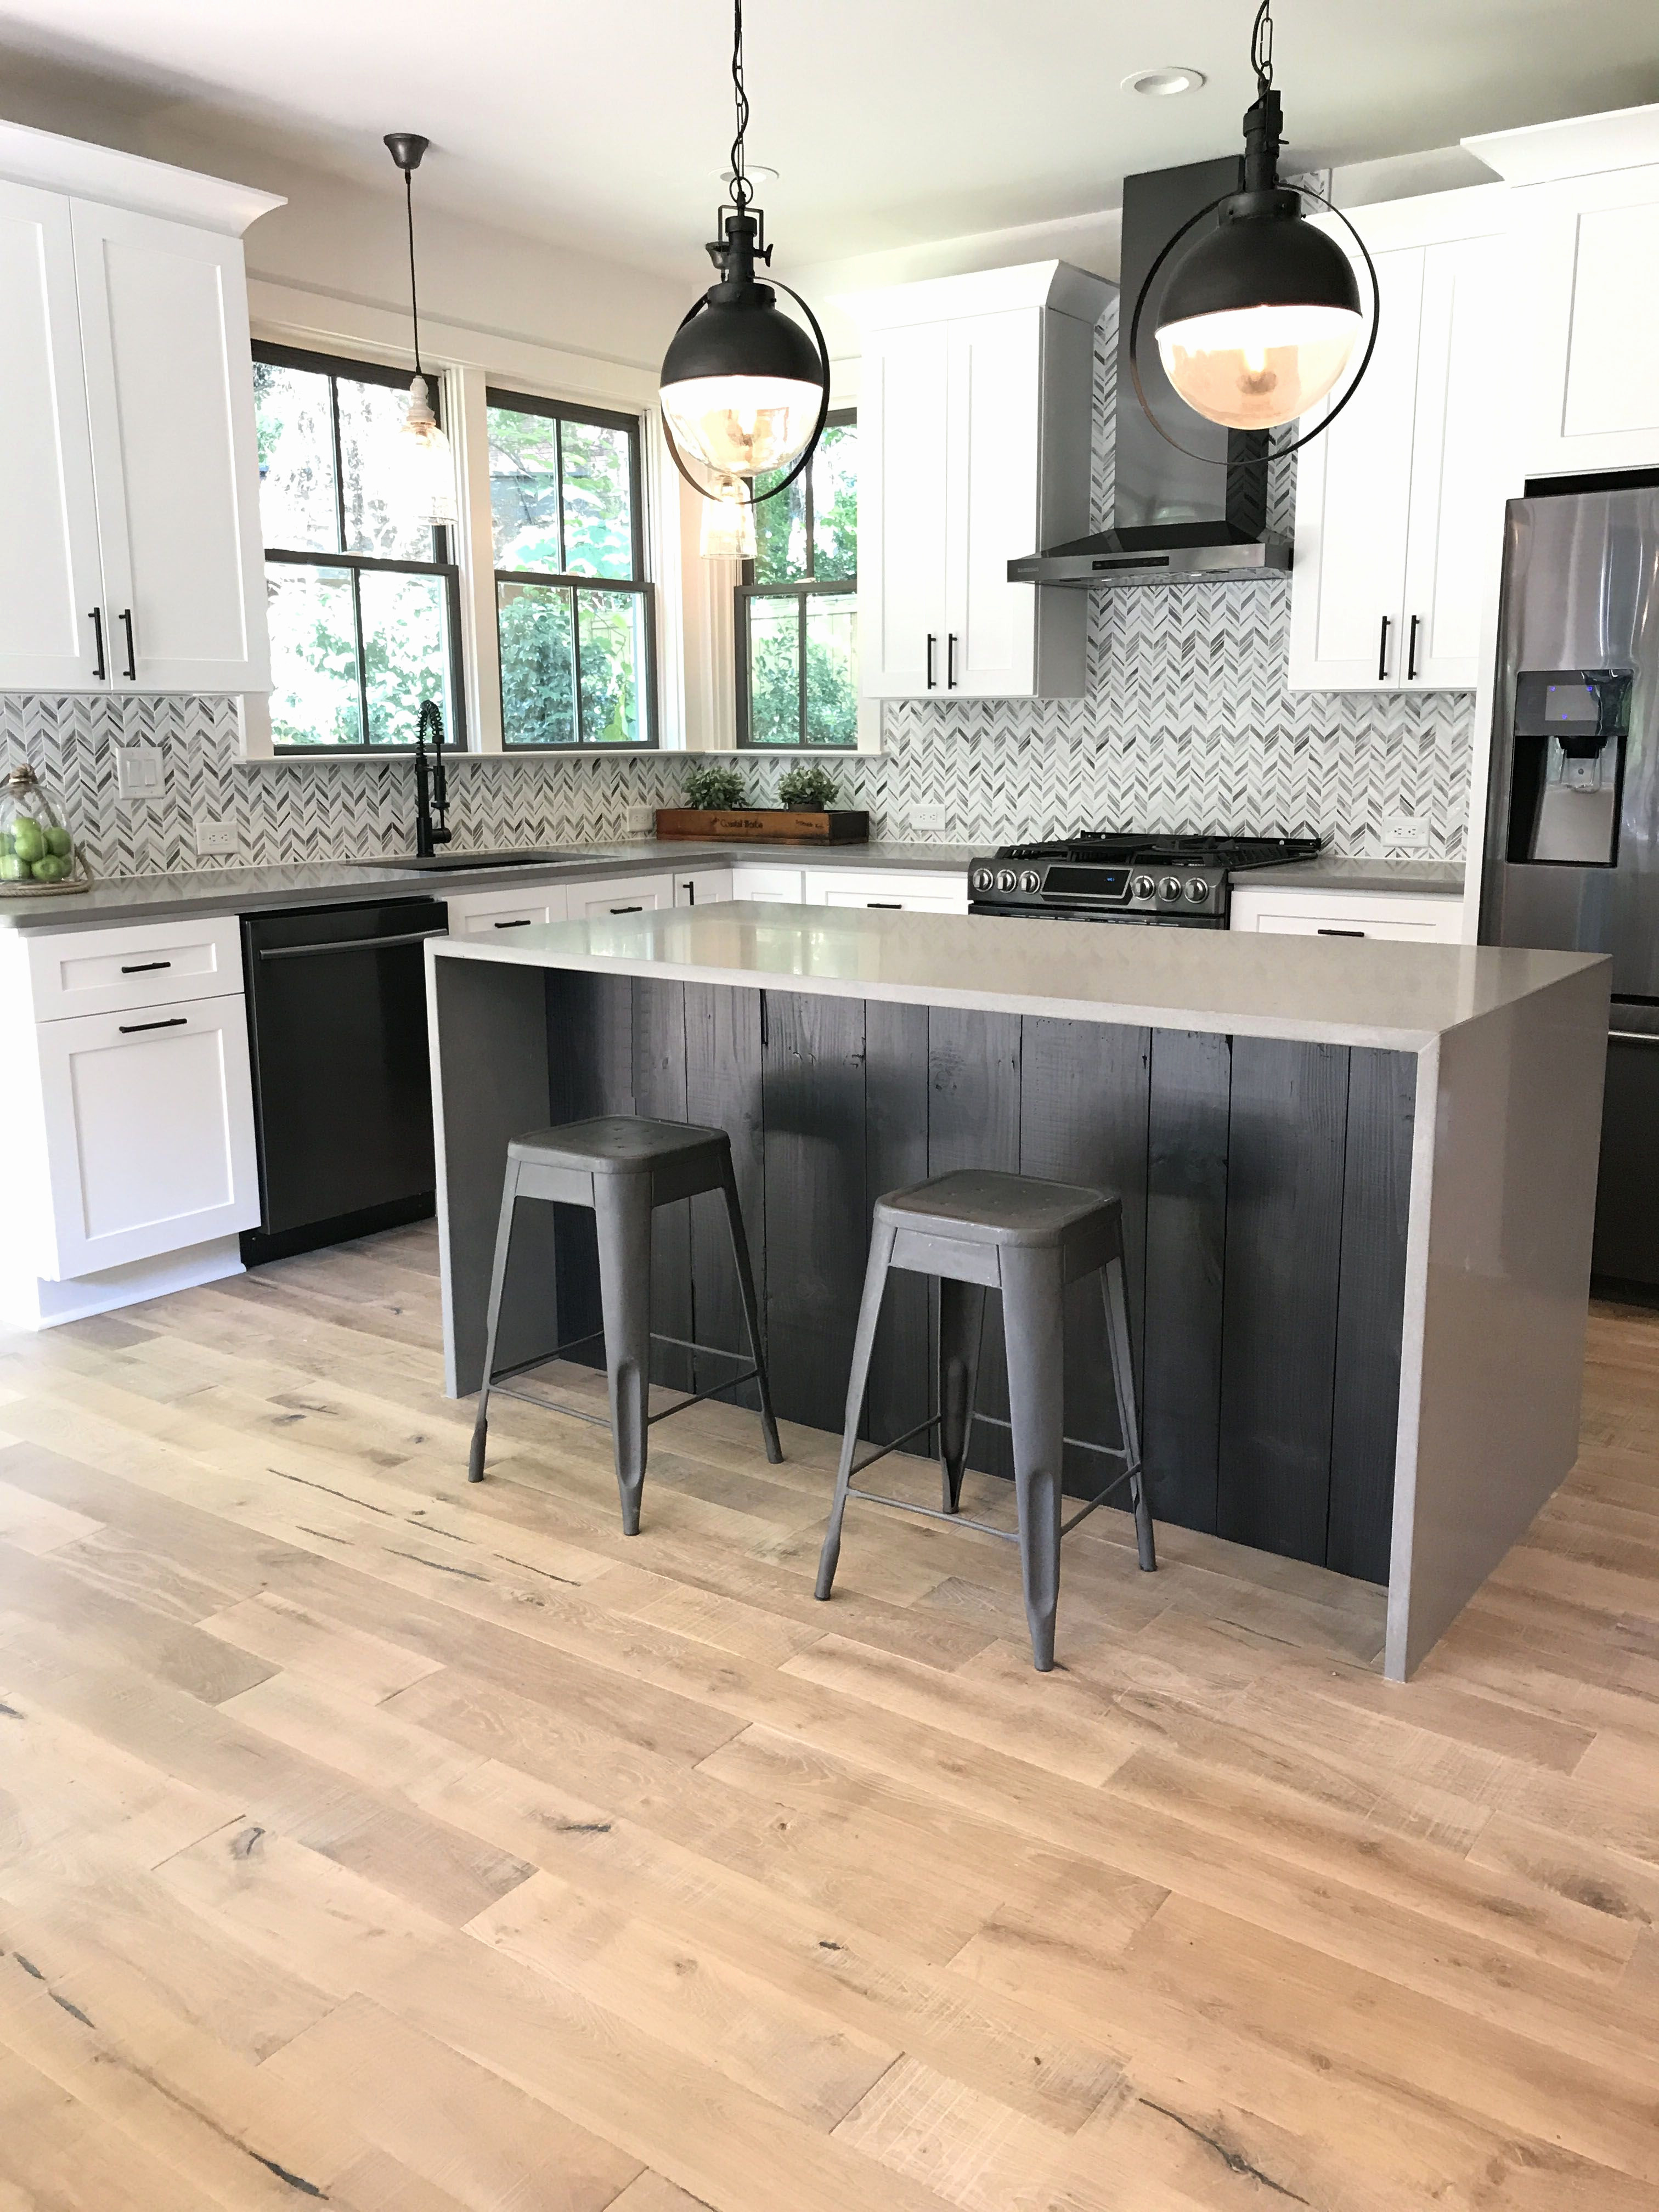 white kitchen with grey hardwood floors of pictures of laminate flooring in kitchen beautiful laminate flooring intended for pictures of laminate flooring in kitchen awesome remodel home storehouse planks drum white oak kitchen hardwood